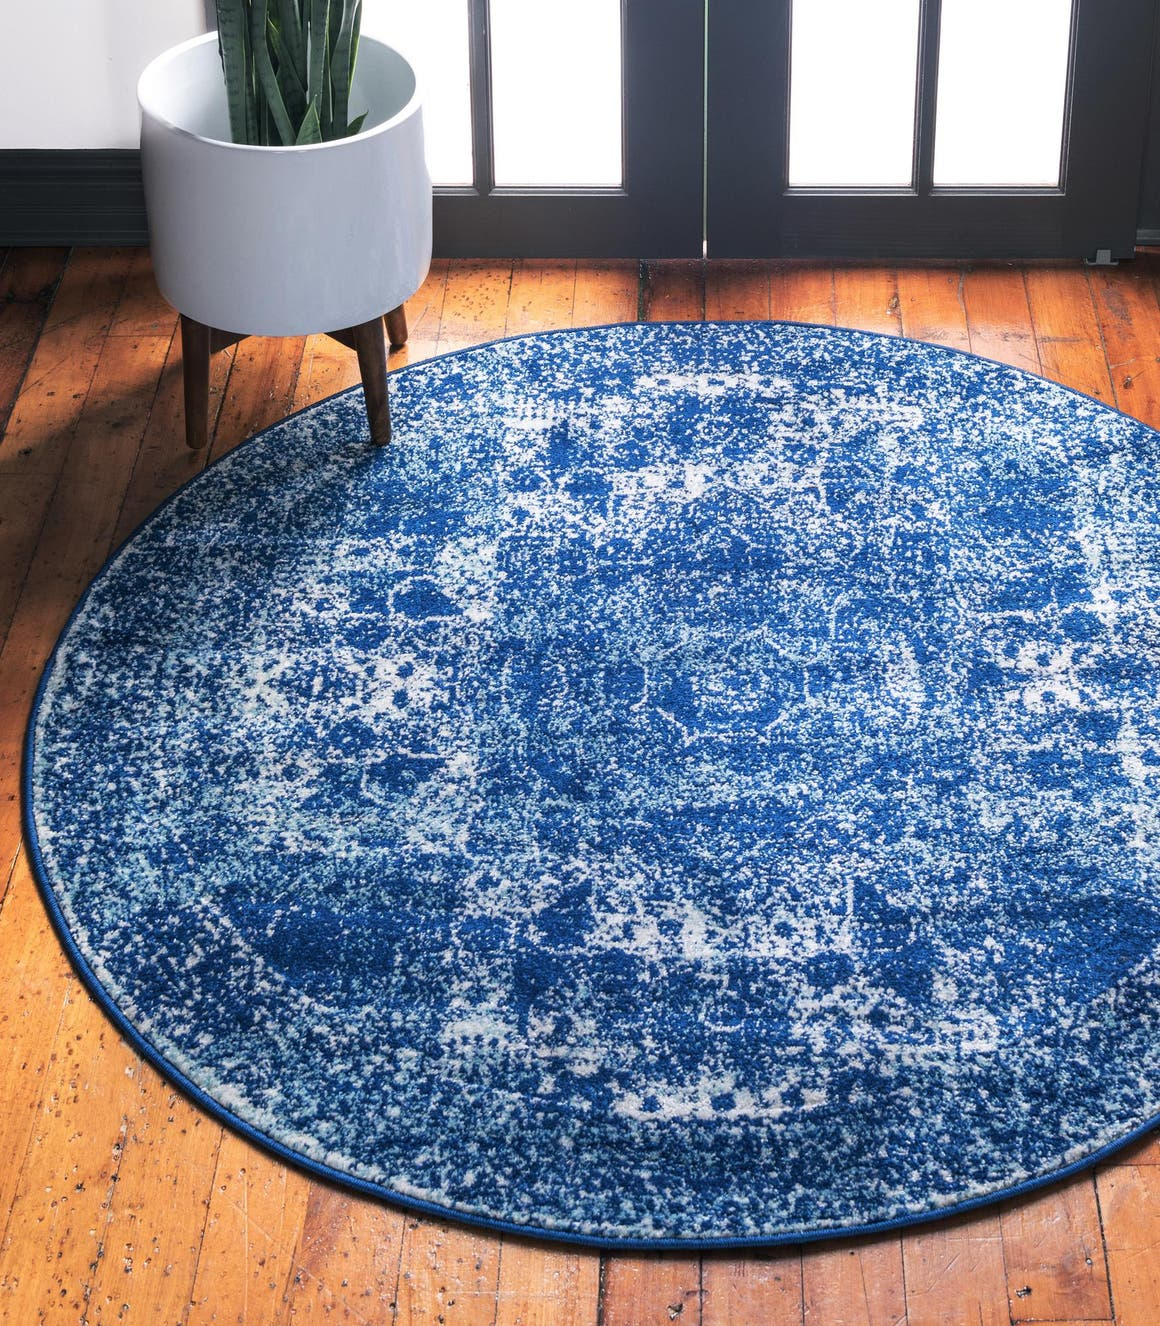 Bexley Round Rug Irugs Uk